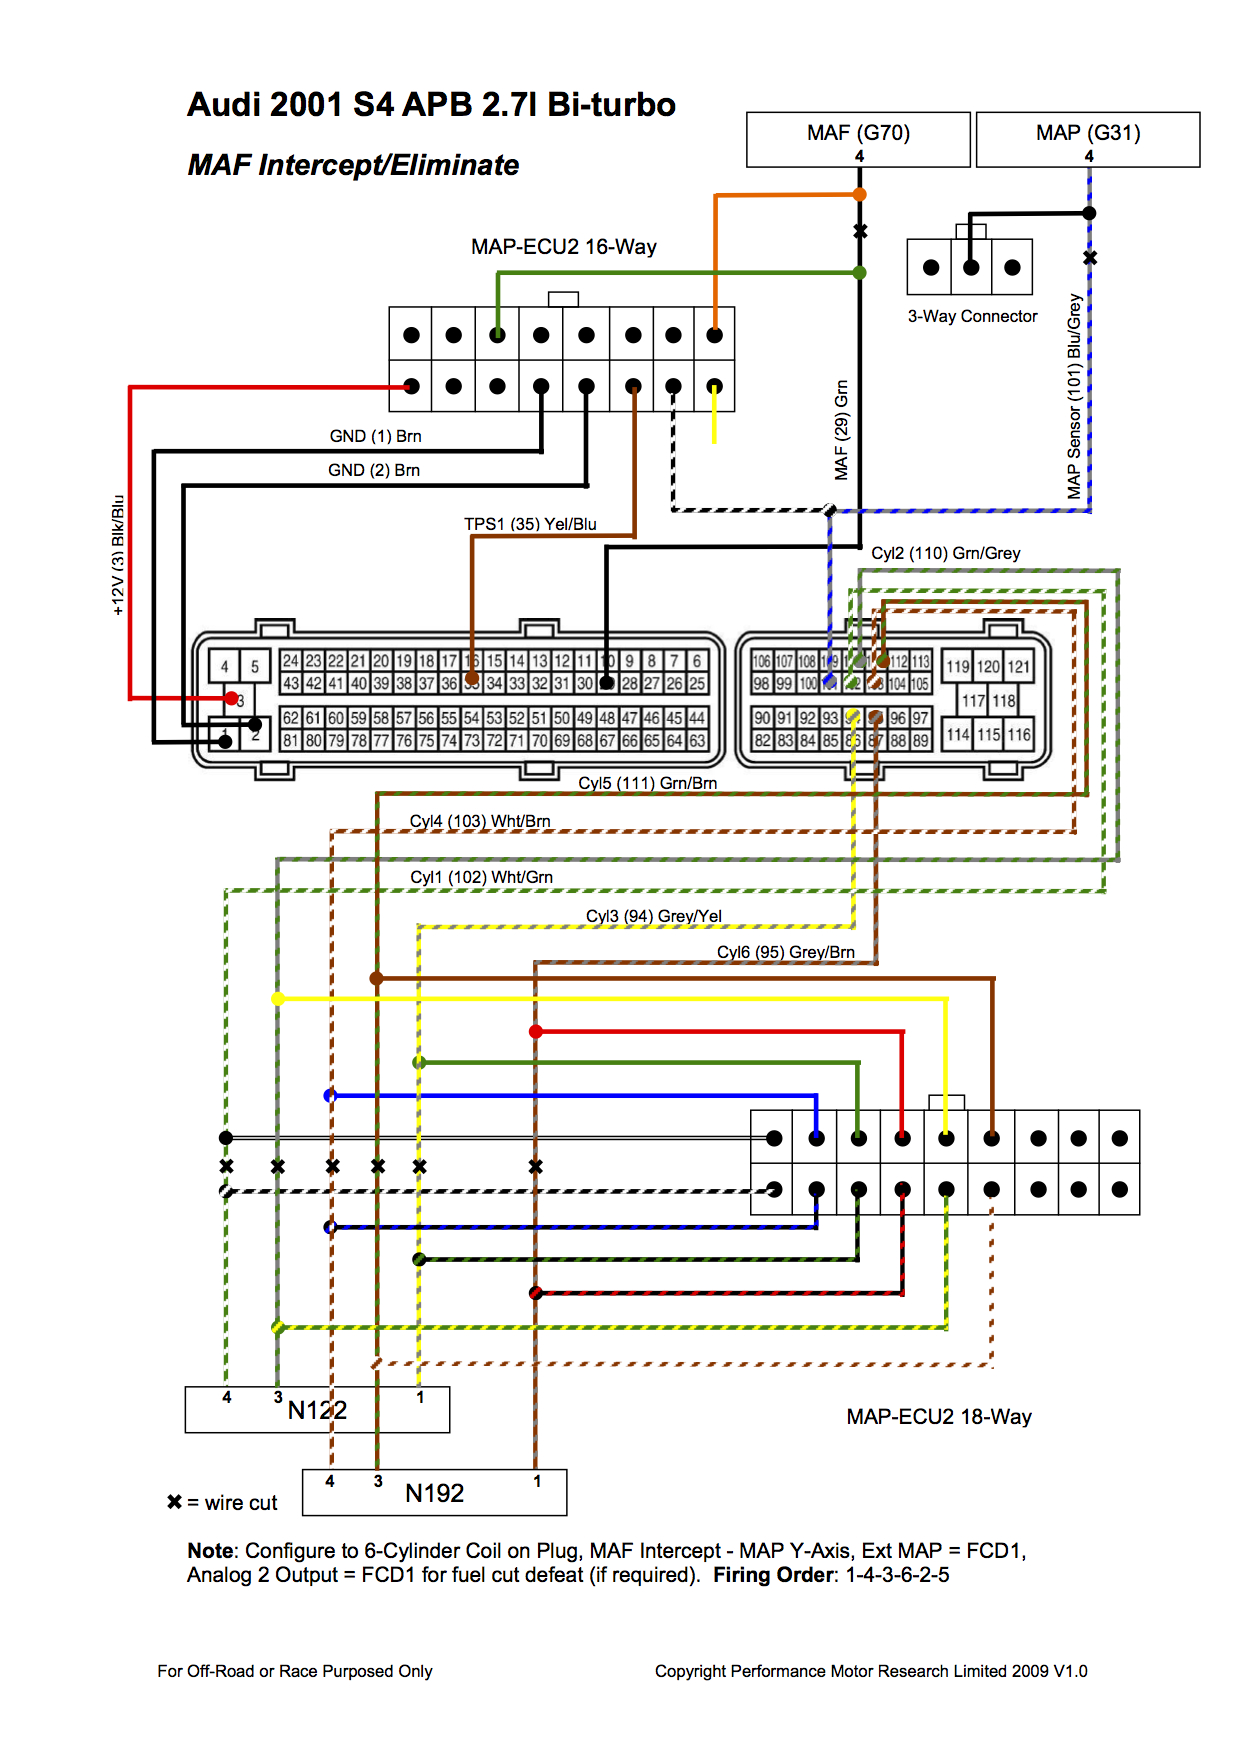 Audi S4 20011 ecu wiring diagram paccar ecu wiring diagram \u2022 wiring diagrams j  at soozxer.org